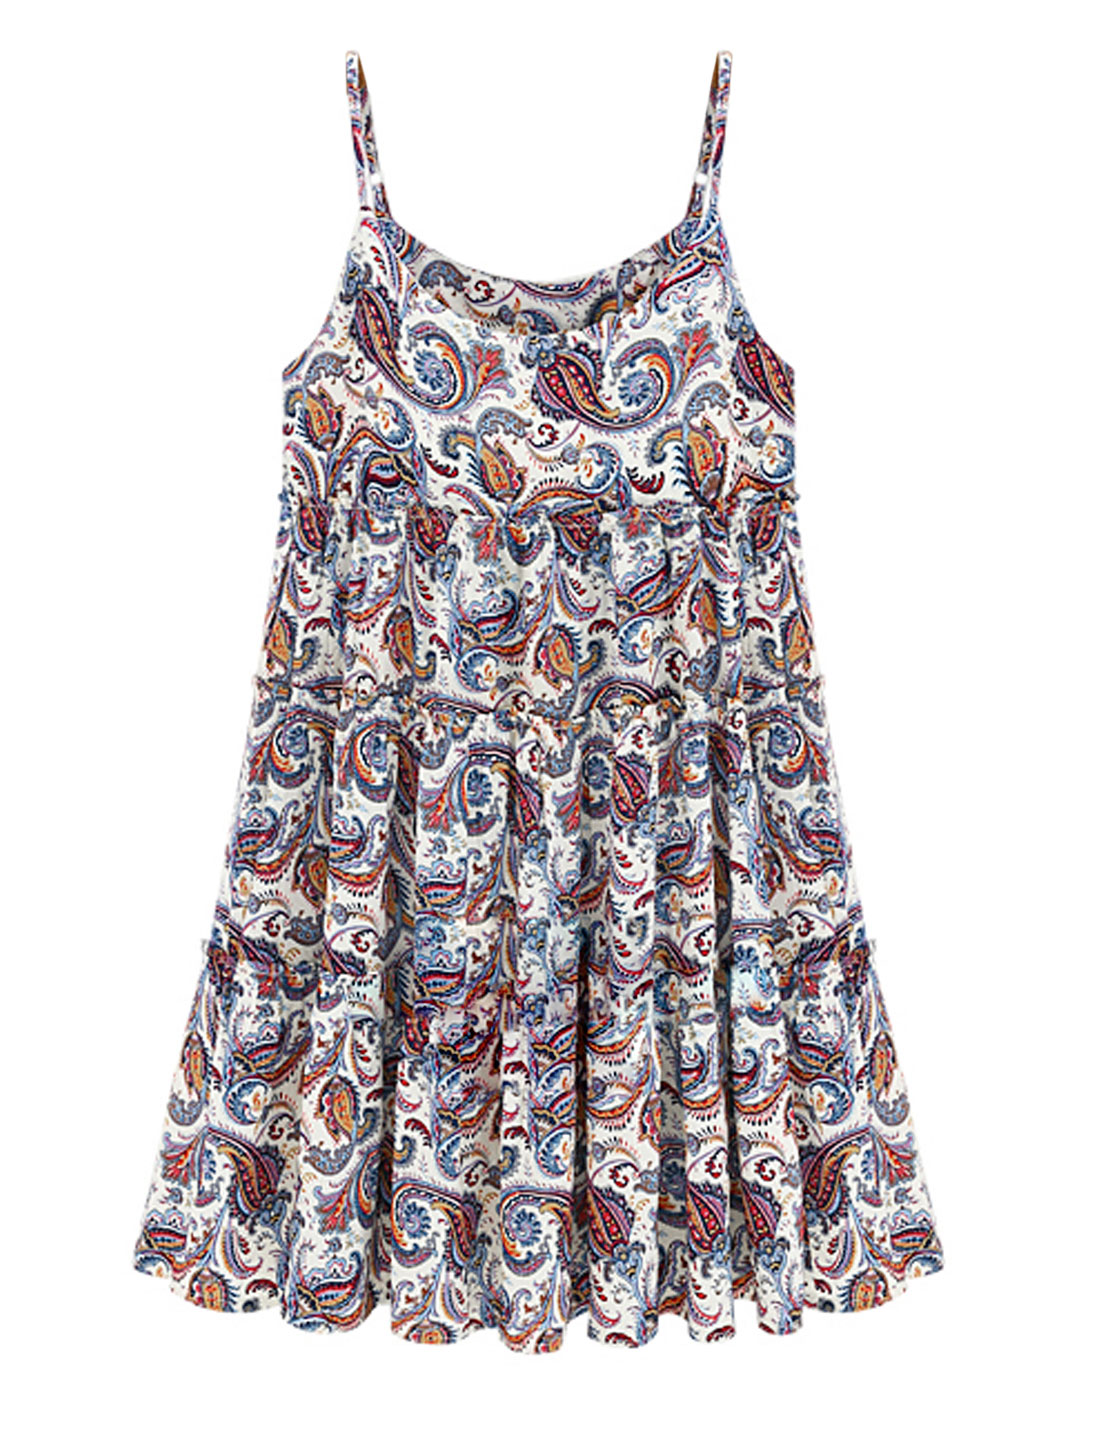 Lady Pullover Spaghetti Straps Paisleys Pattern Casual Dress Multicolor M